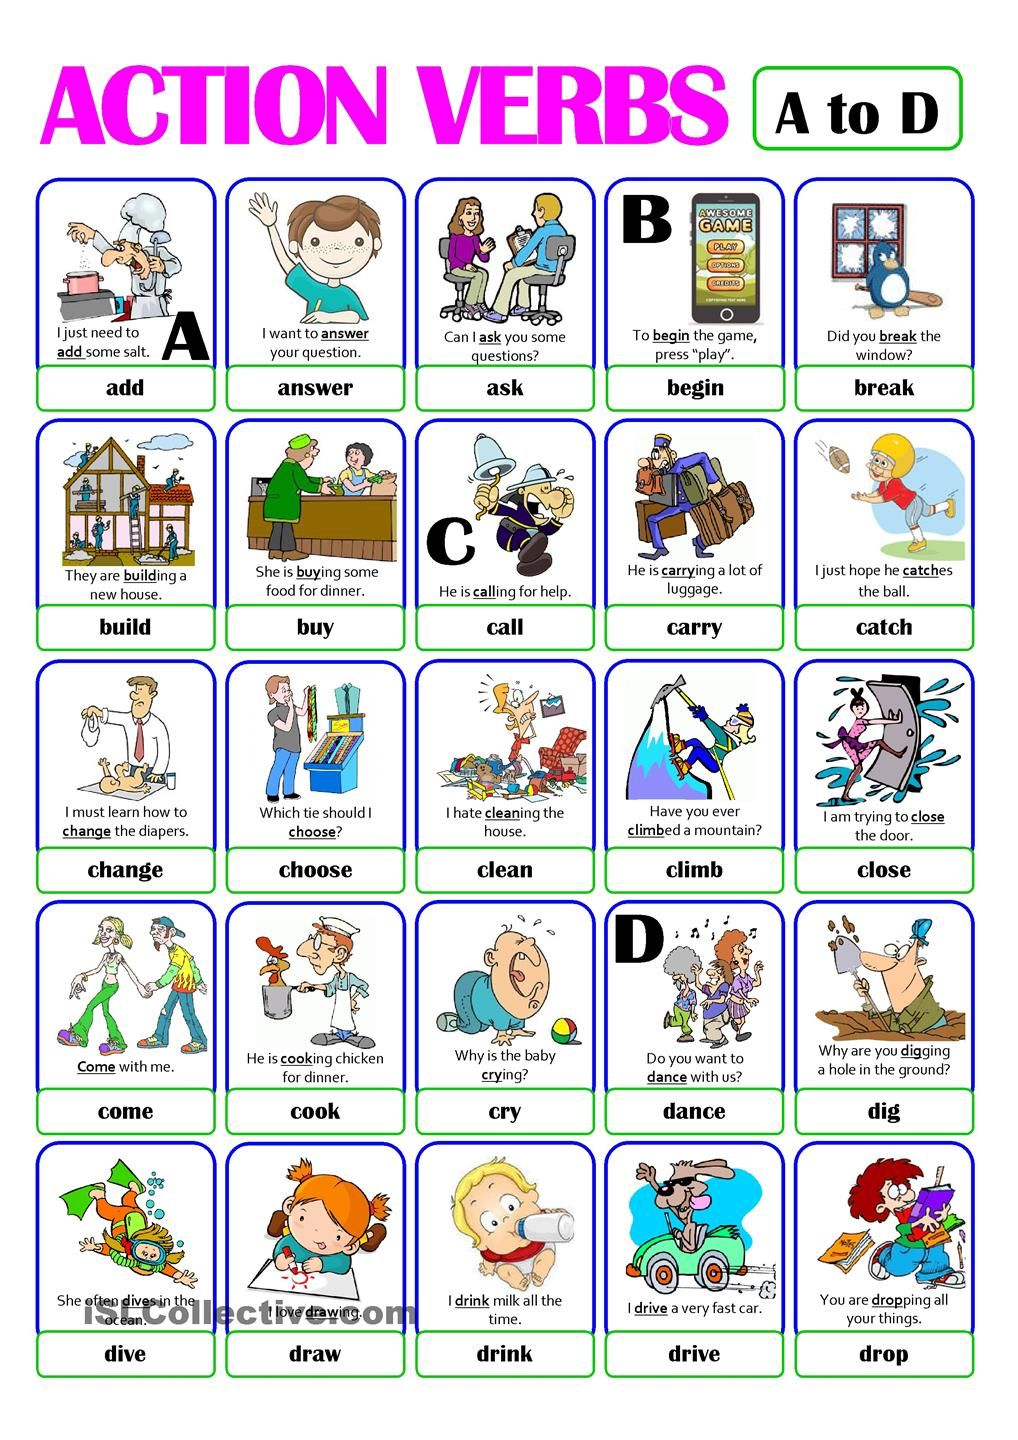 medium resolution of PICTIONARY - ACTION VERB SET (1) - from A to D   Action verbs